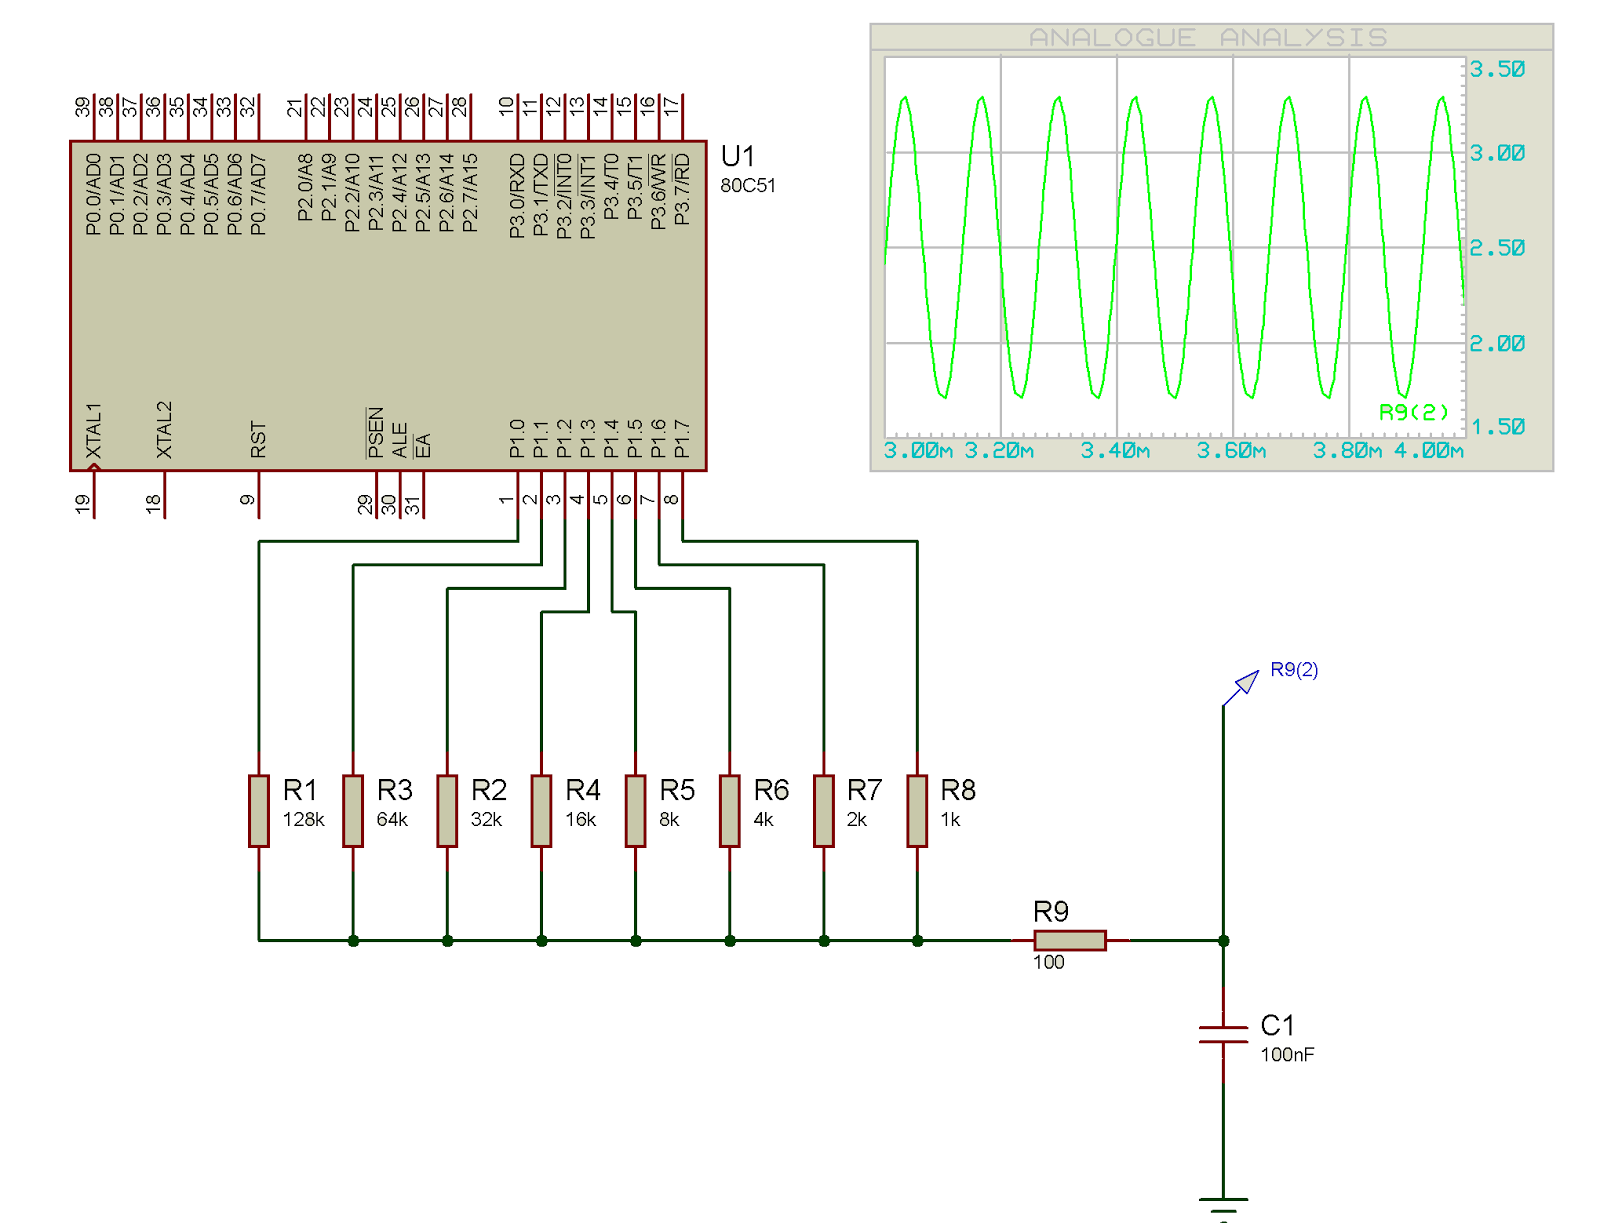 Electronix HuB: How to generate sine wave using 8051 microcontroller